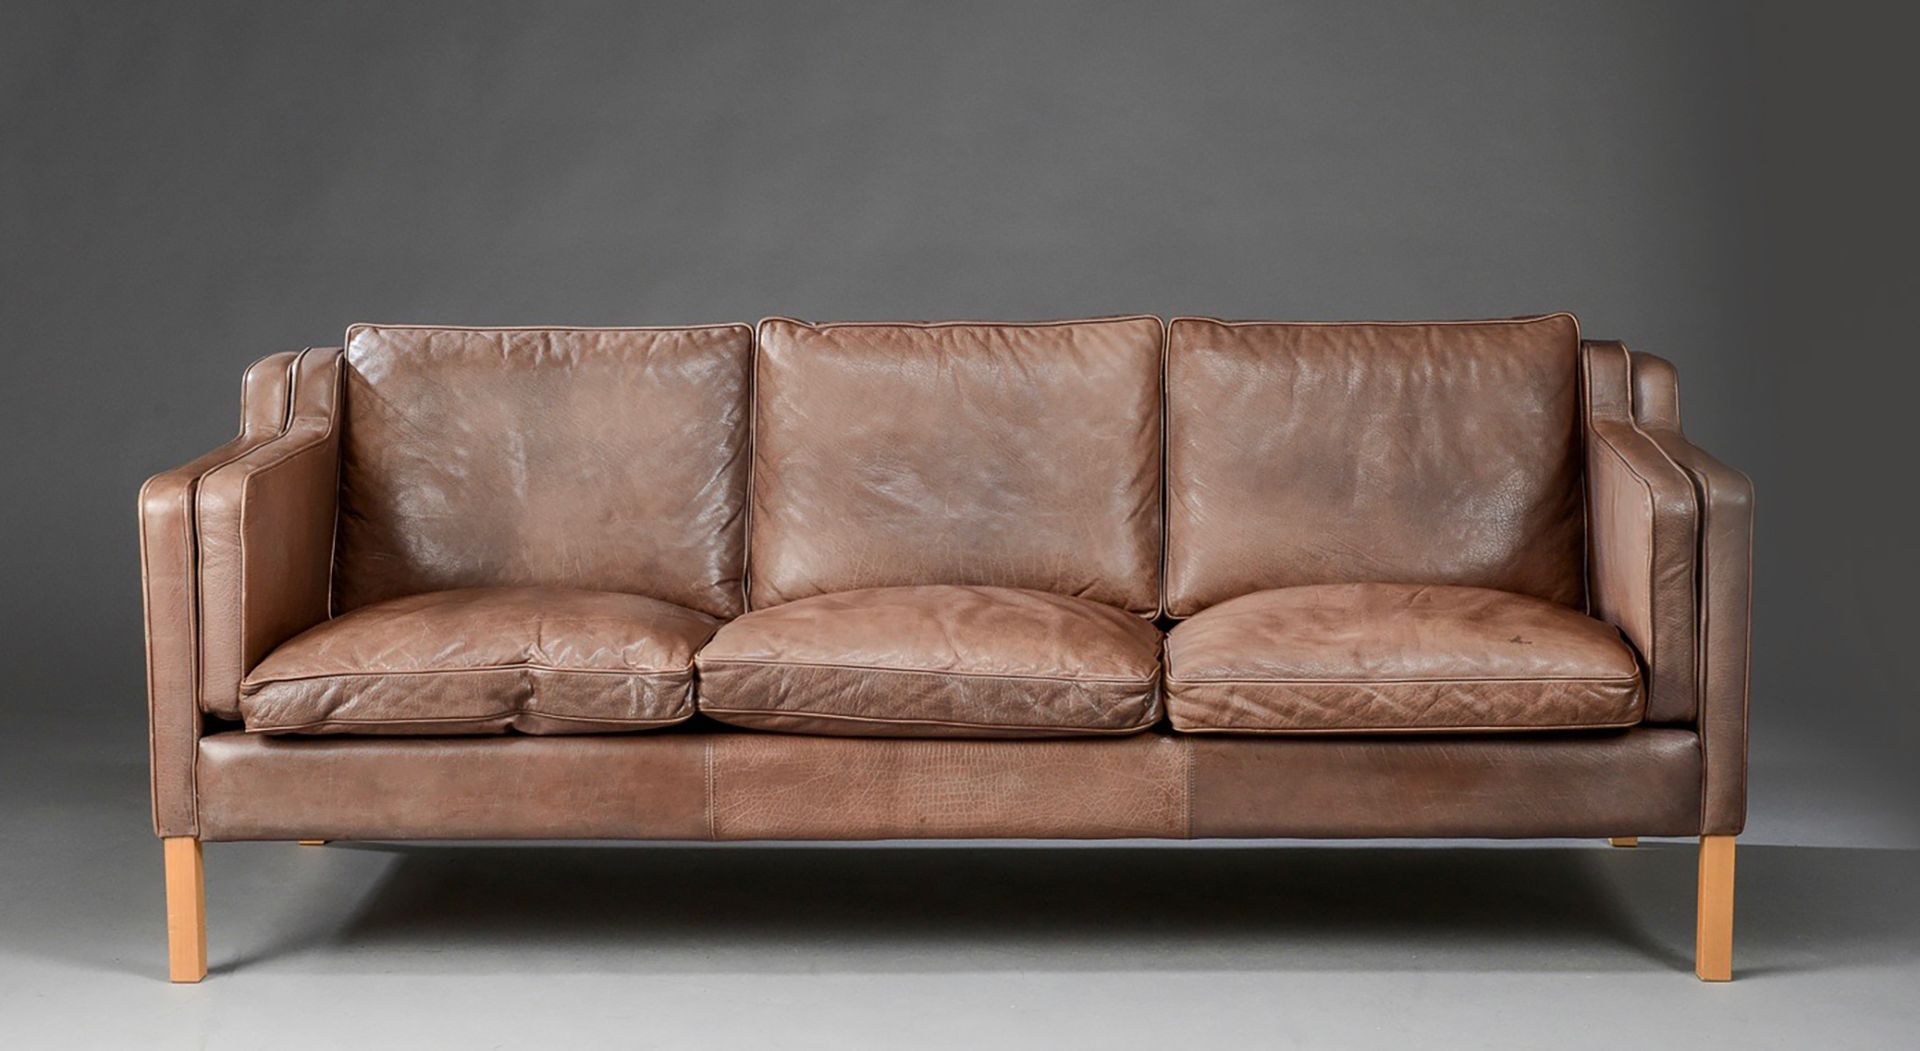 Eames Sofa Compact Used picture on mid century danish leather sofa from stouby with Eames Sofa Compact Used, sofa dc82dd270dc95eb6d5a8ad92484ef928